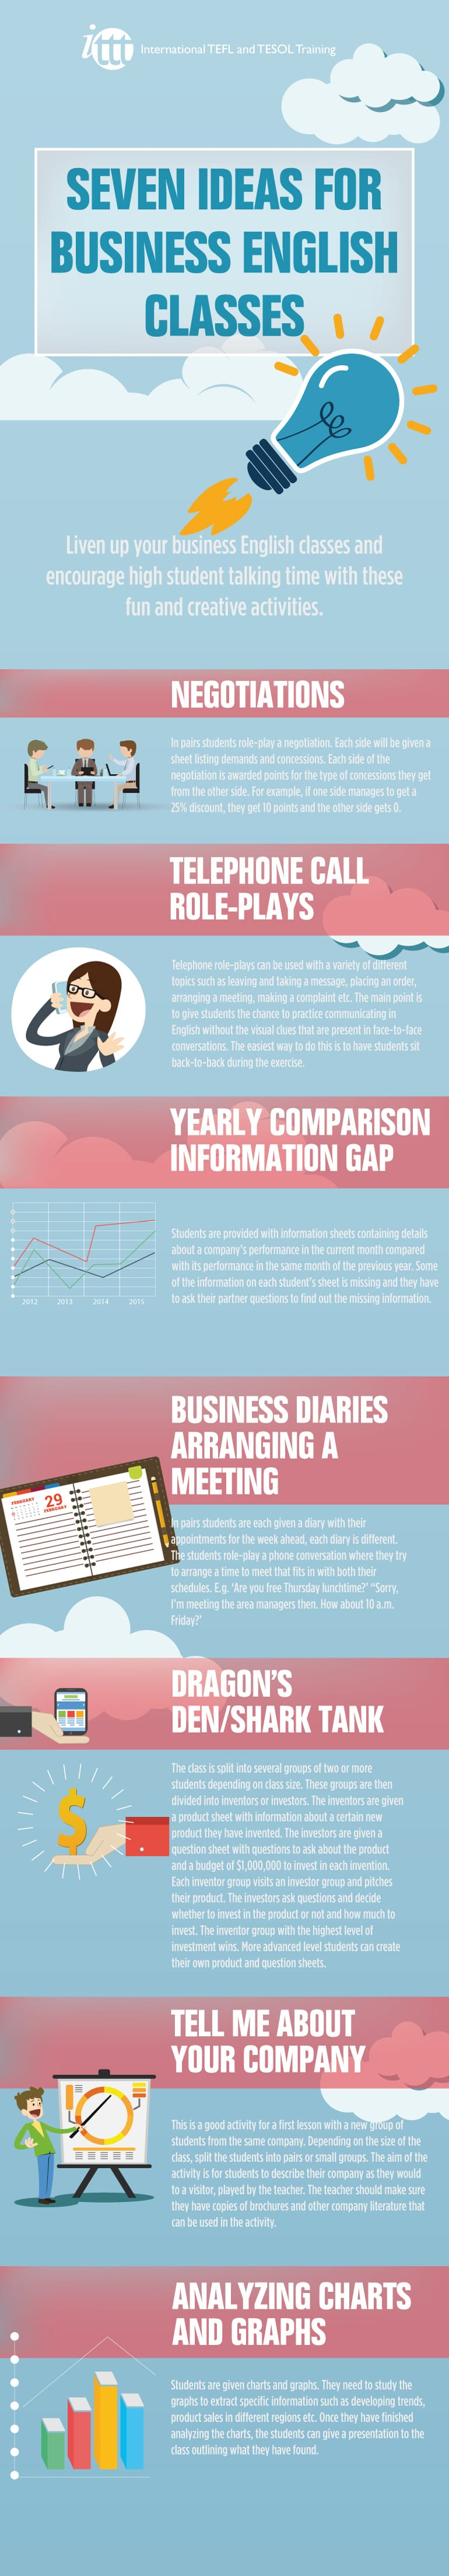 Infographic 7 ideas for business English classes